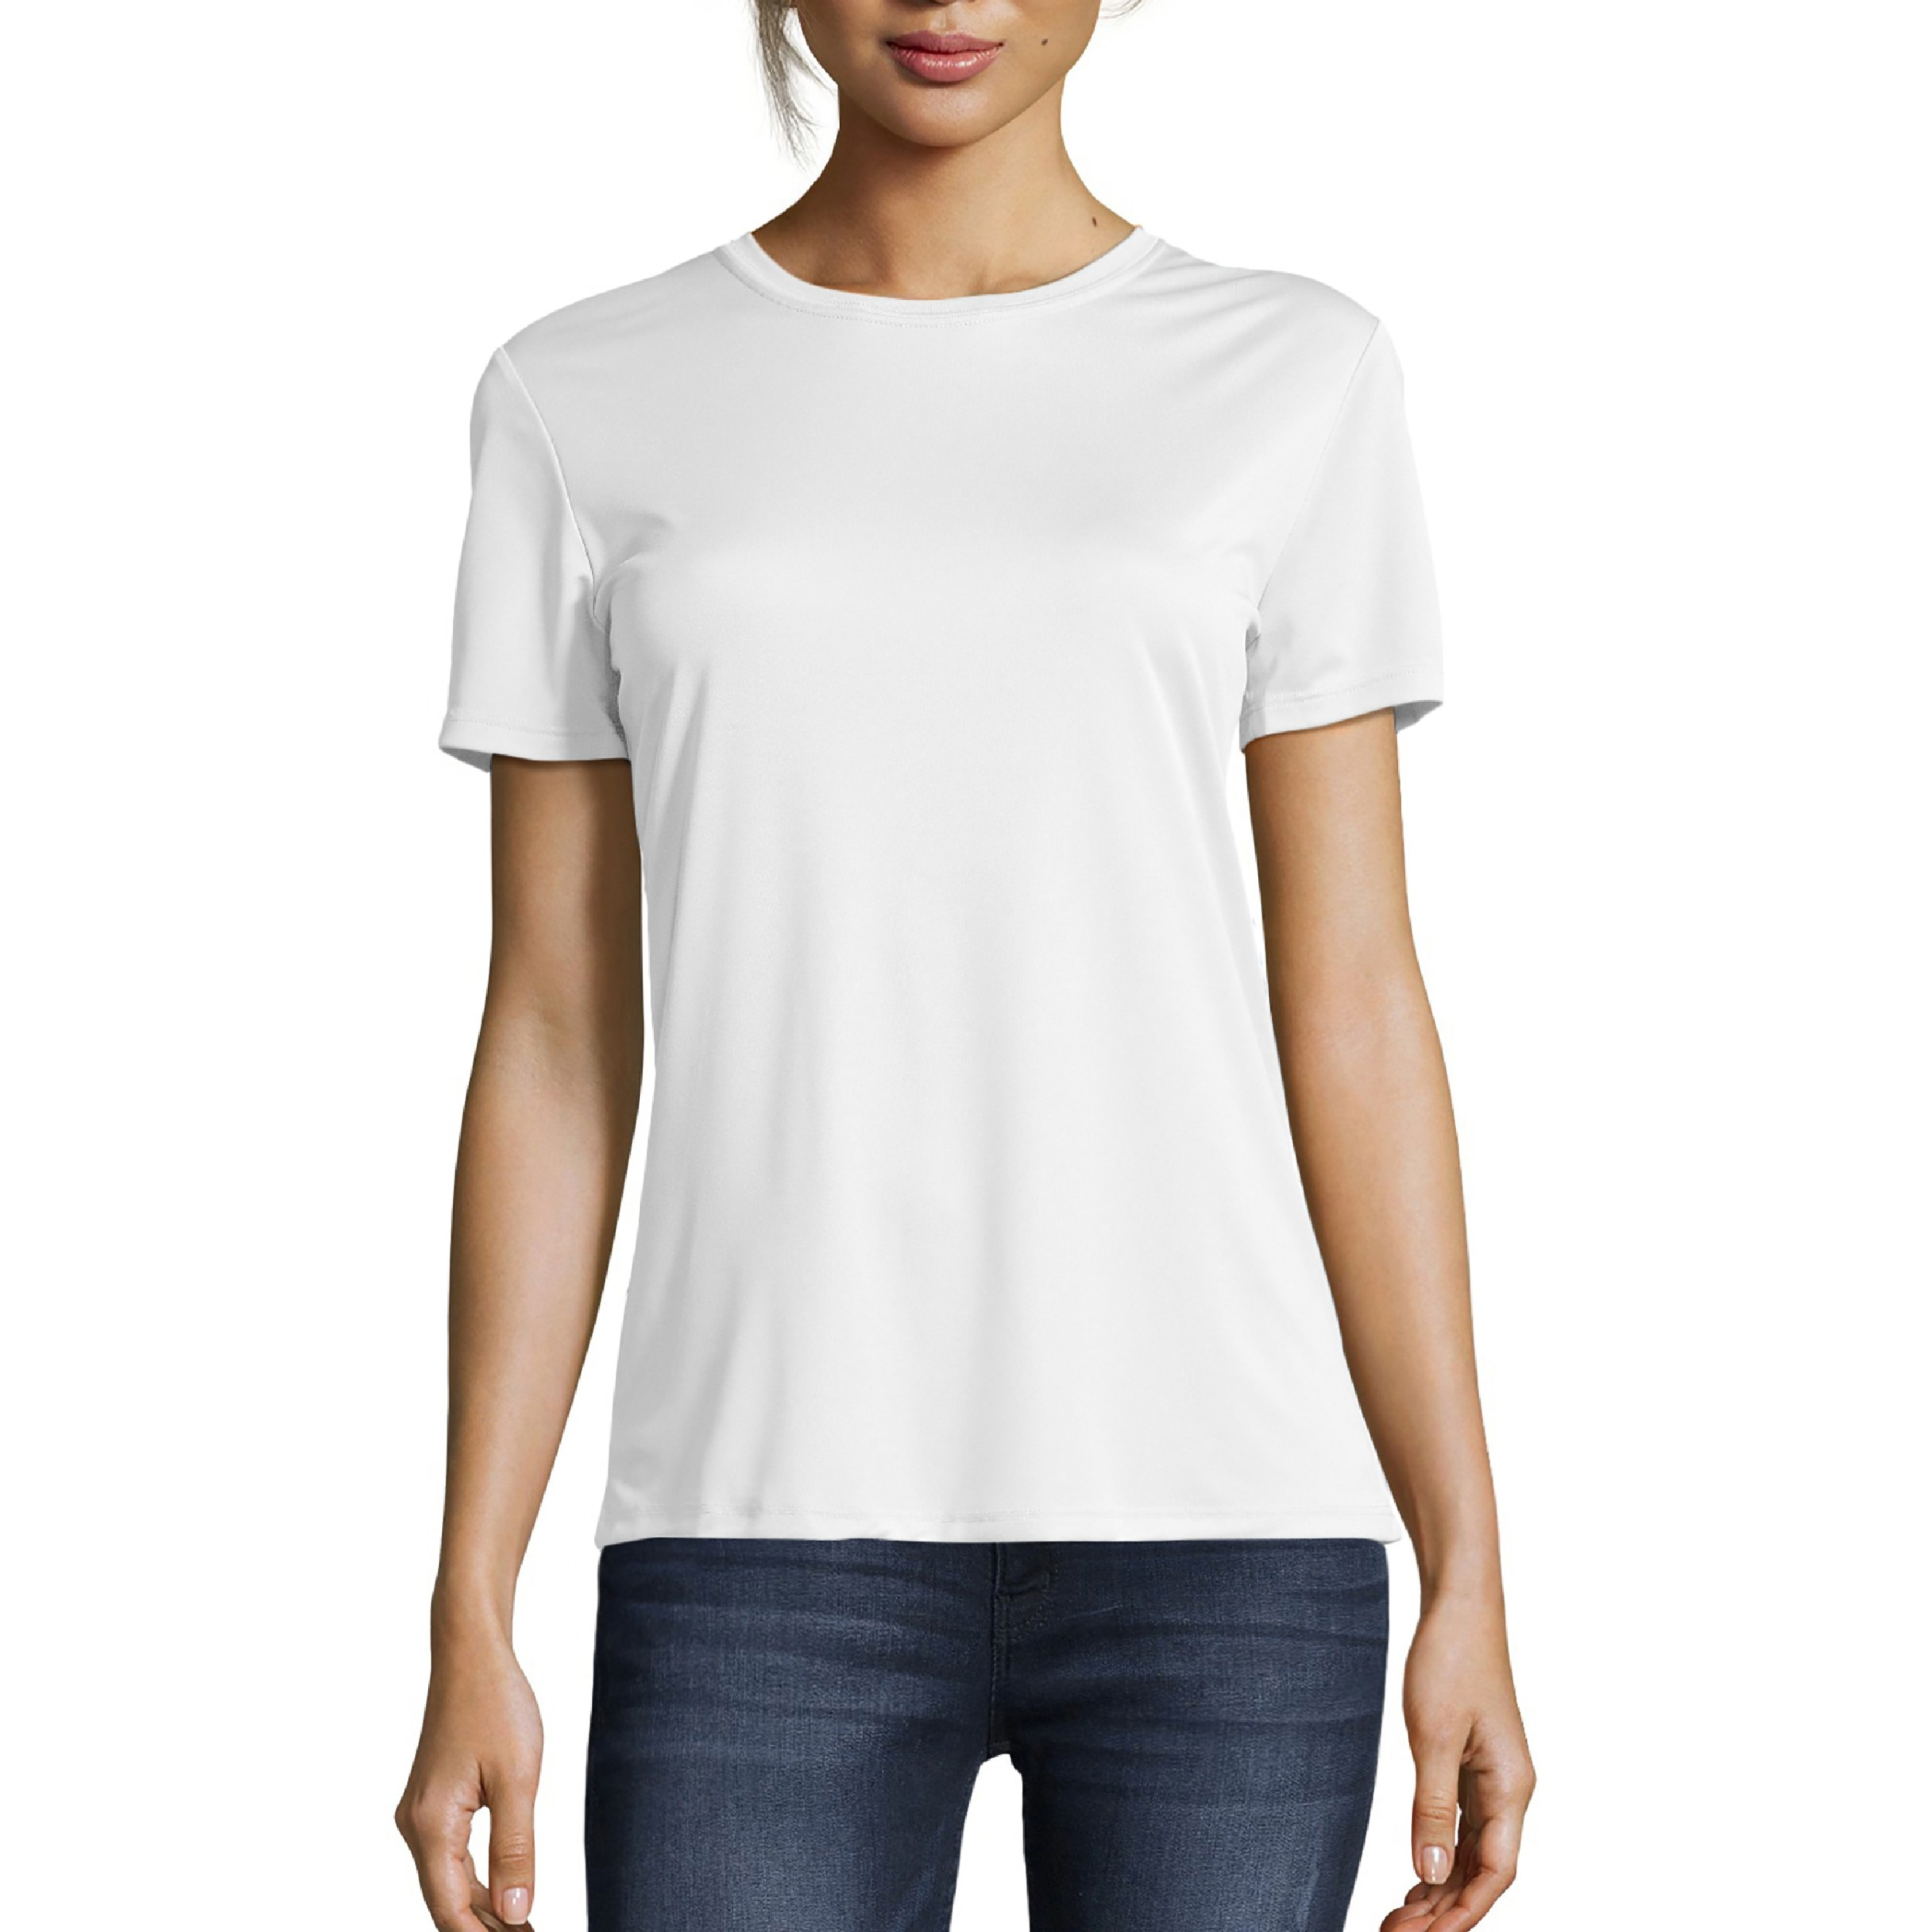 Model wearing the white T-shirt